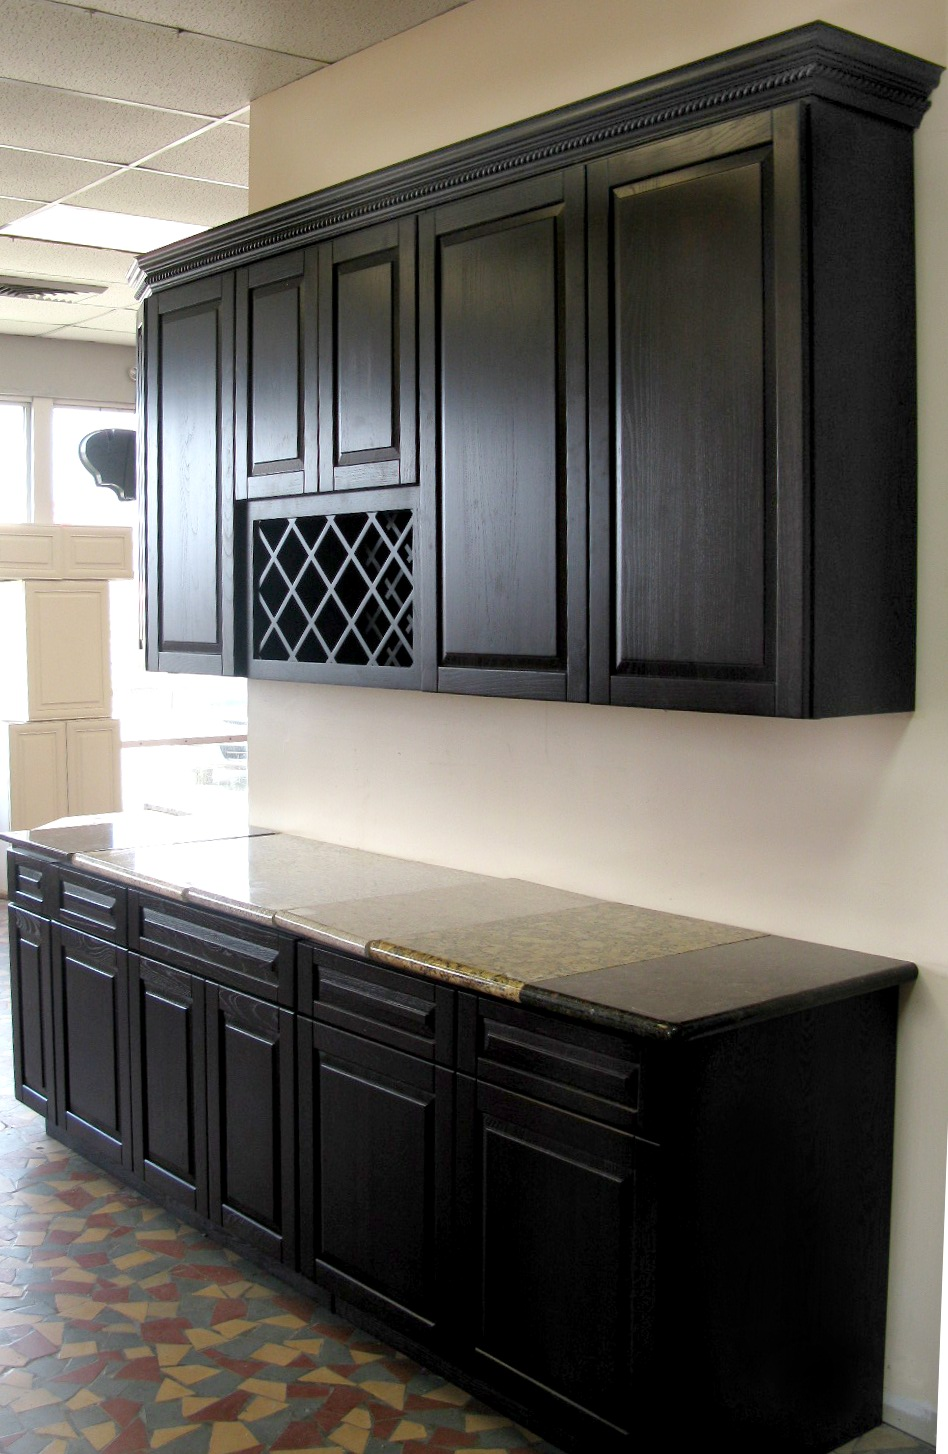 kitchen cupboard ideas on Cabinets for Kitchen: Photos Black Kitchen Cabinets